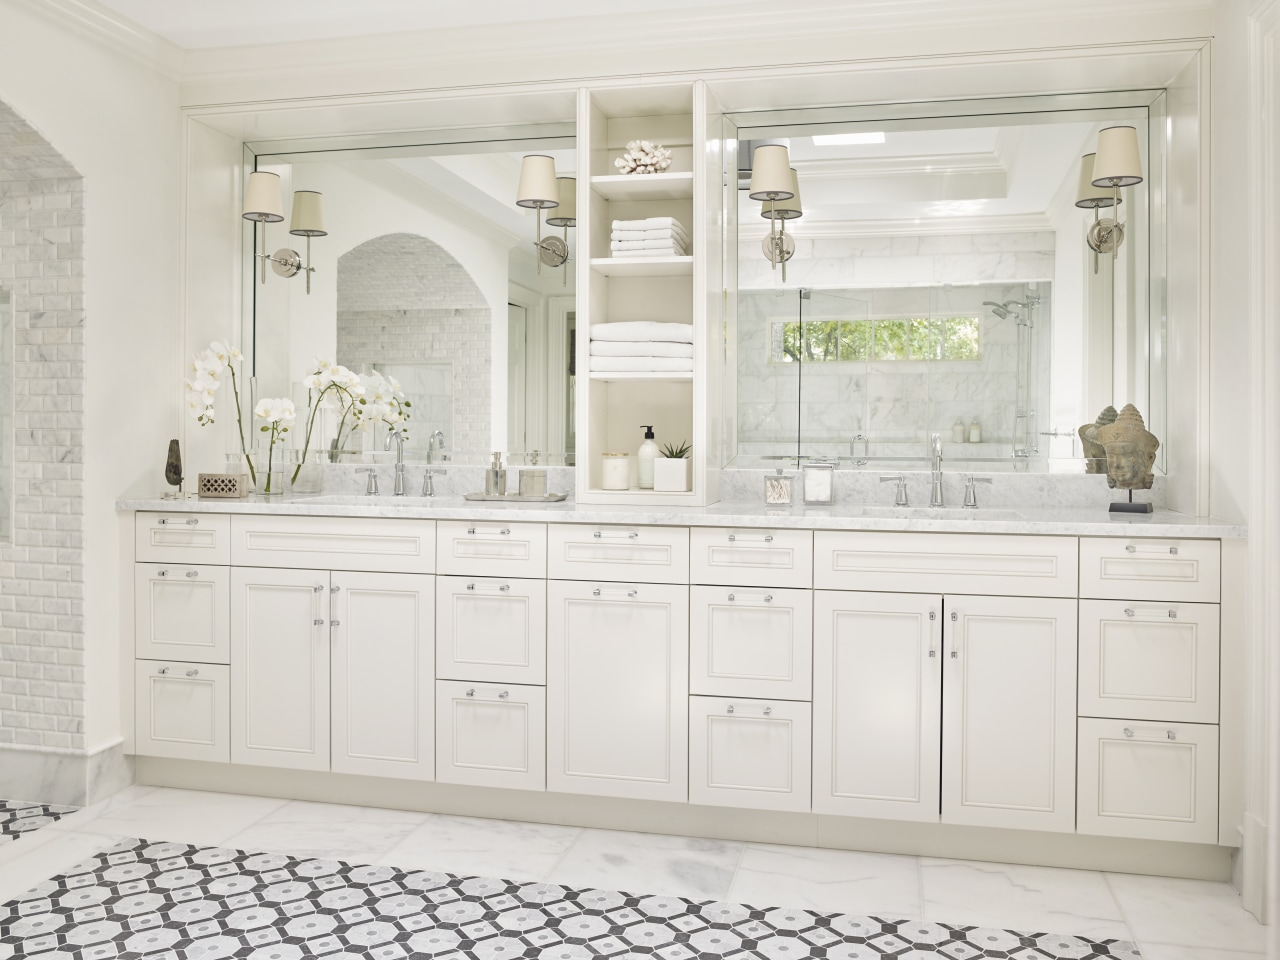 Cabinetry in this large vanity is finished in bathroom, bathroom accessory, bathroom cabinet, cabinetry, furniture, interior design, basin, tap, white, traditional, Mark Williams Design